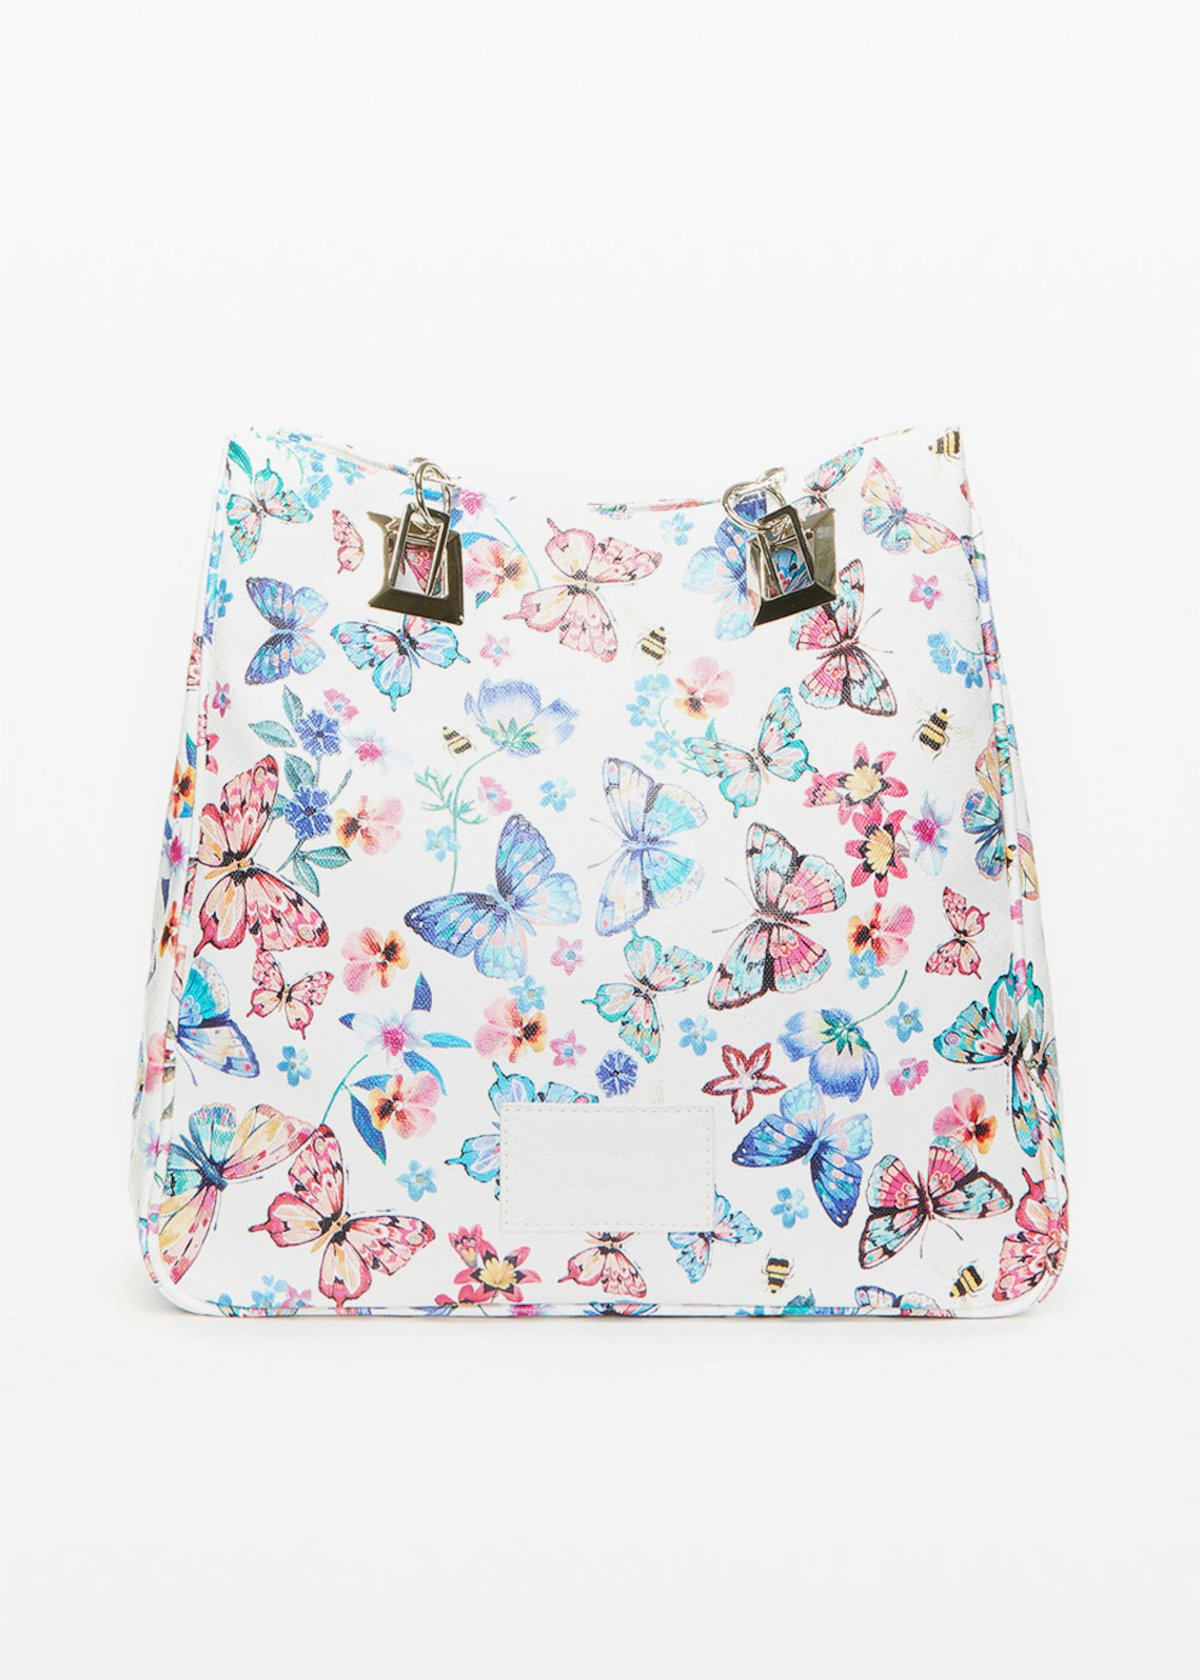 Minibufl faux leather shopping bag butter-flowers print - White Fantasia - Woman